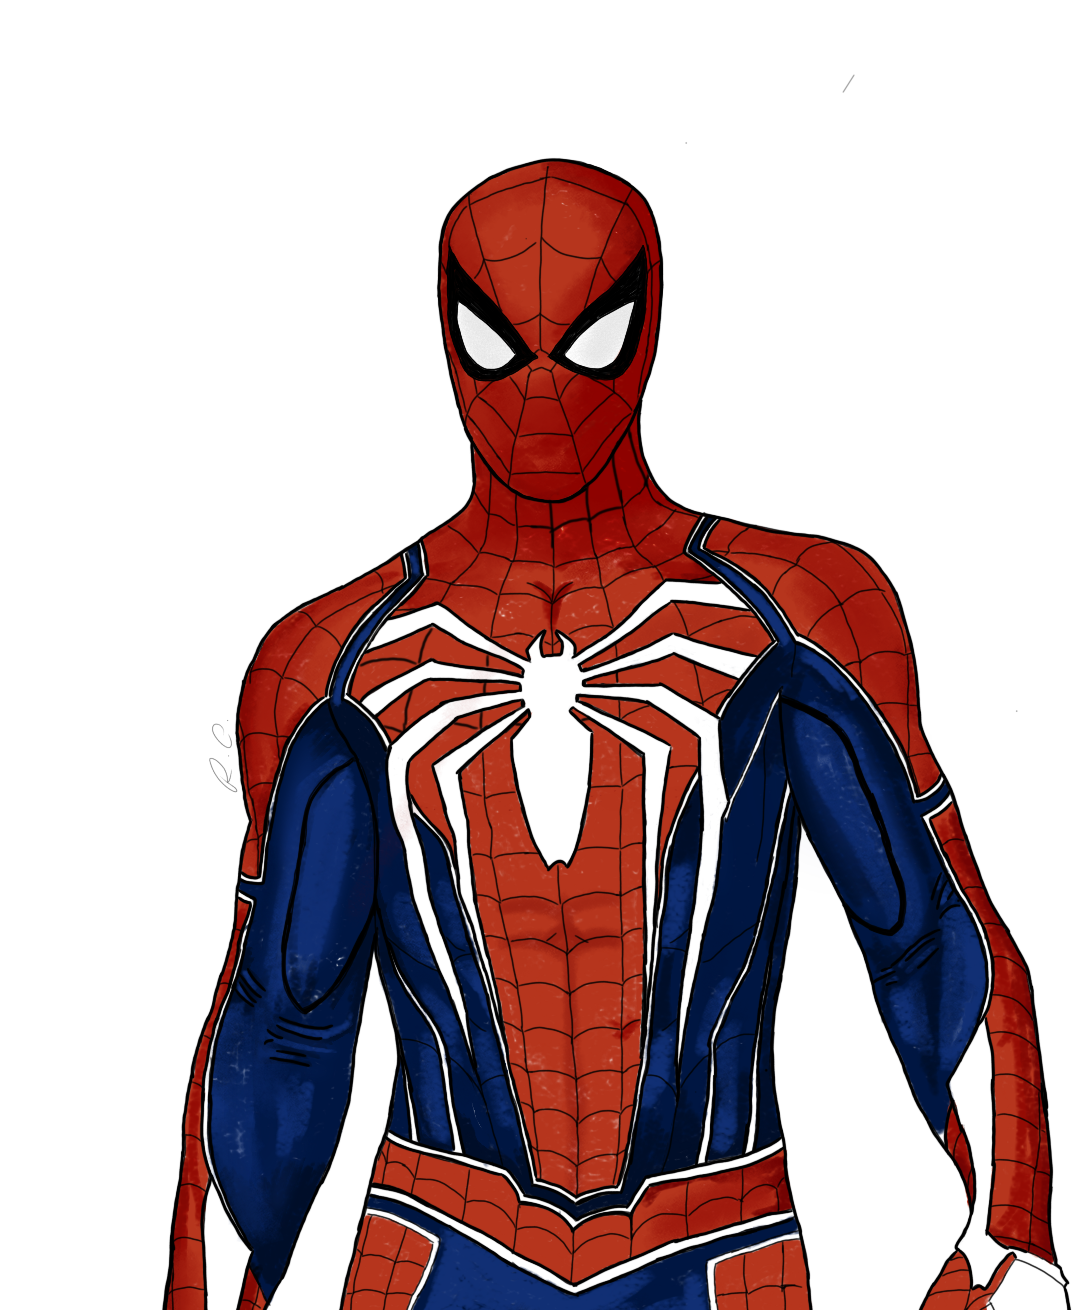 Spider Man Suit Drawing : spider, drawing, Simple, Advanced, Drawing, Marvel's, Spider-Man, Spiderman,, Marvel